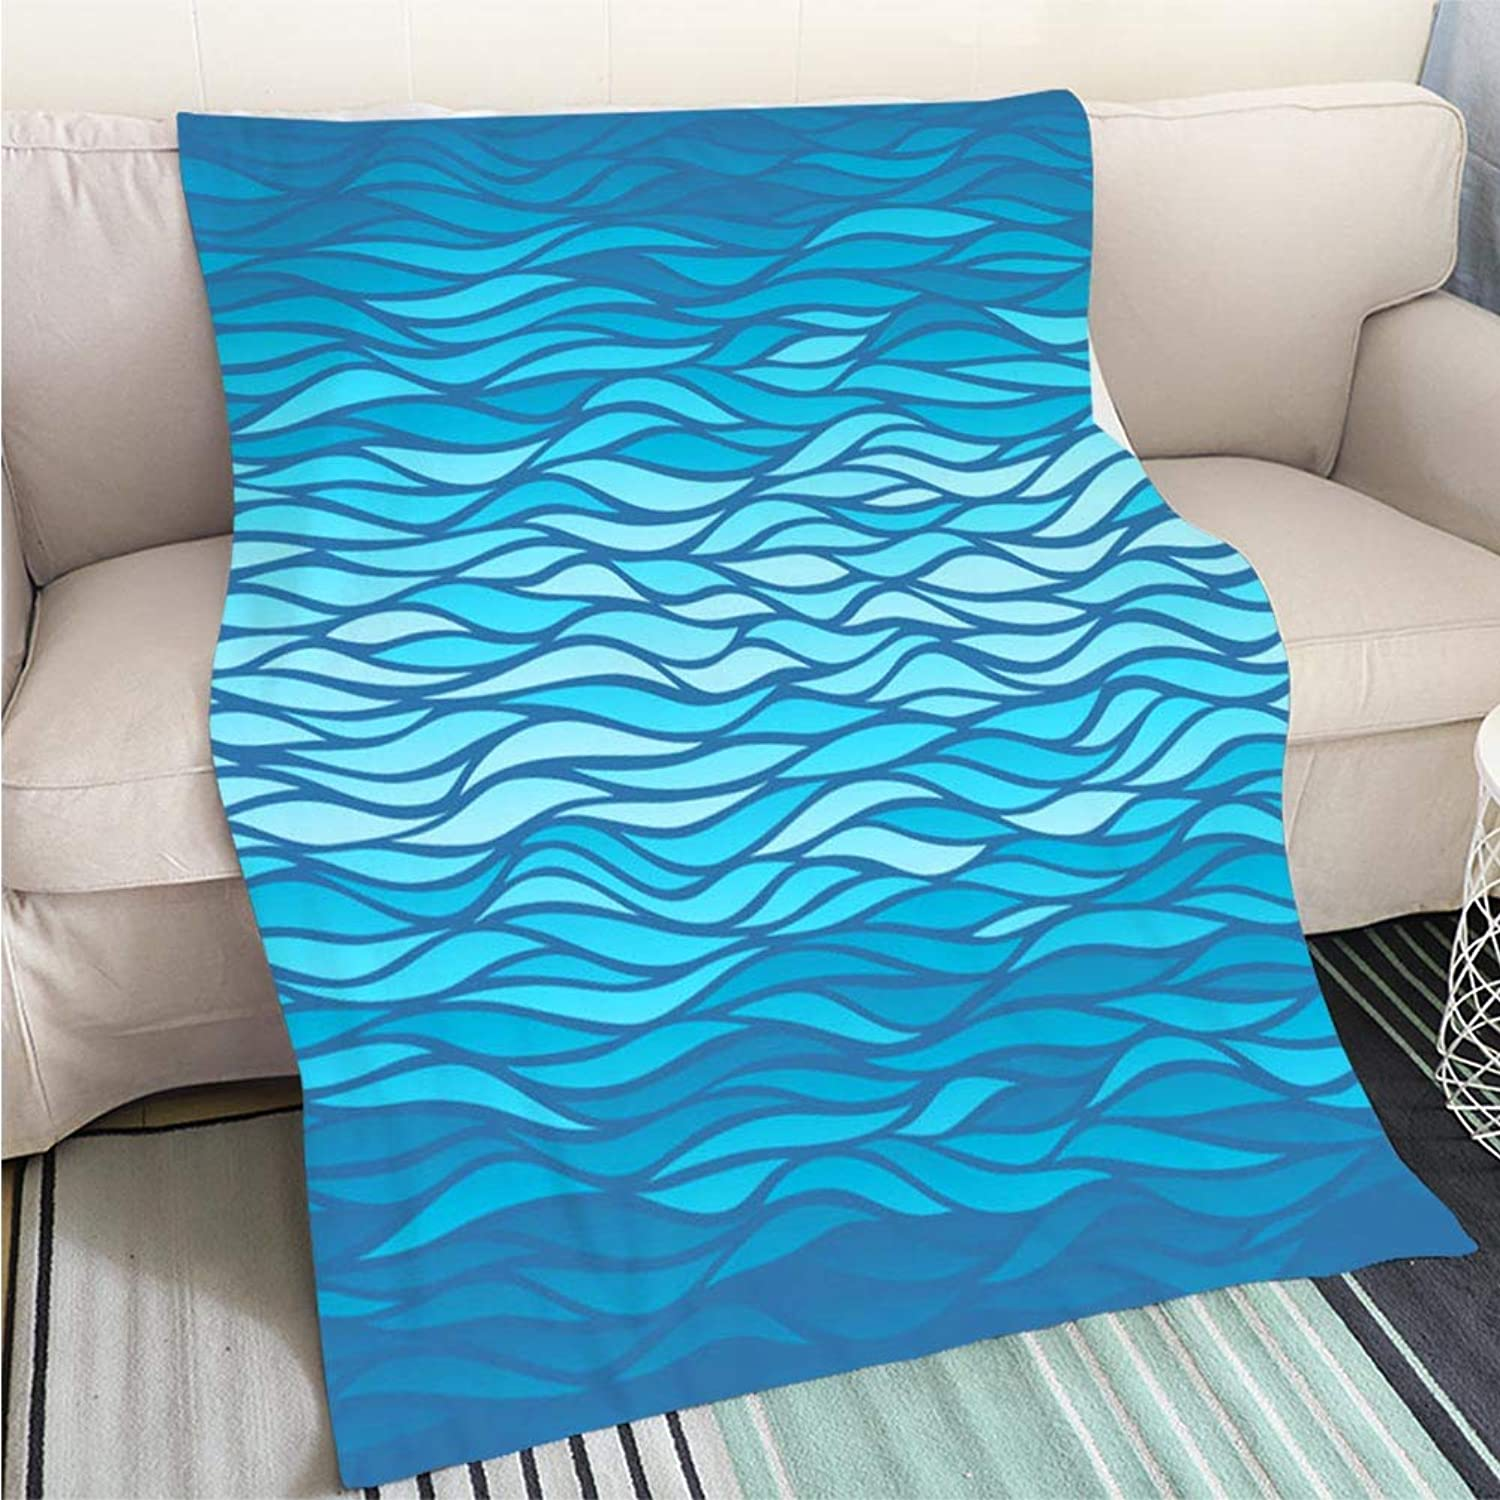 BEICICI Comforter Multicolor Bed or Couch bluee Waves Background Sofa Bed or Bed 3D Printing Cool Quilt